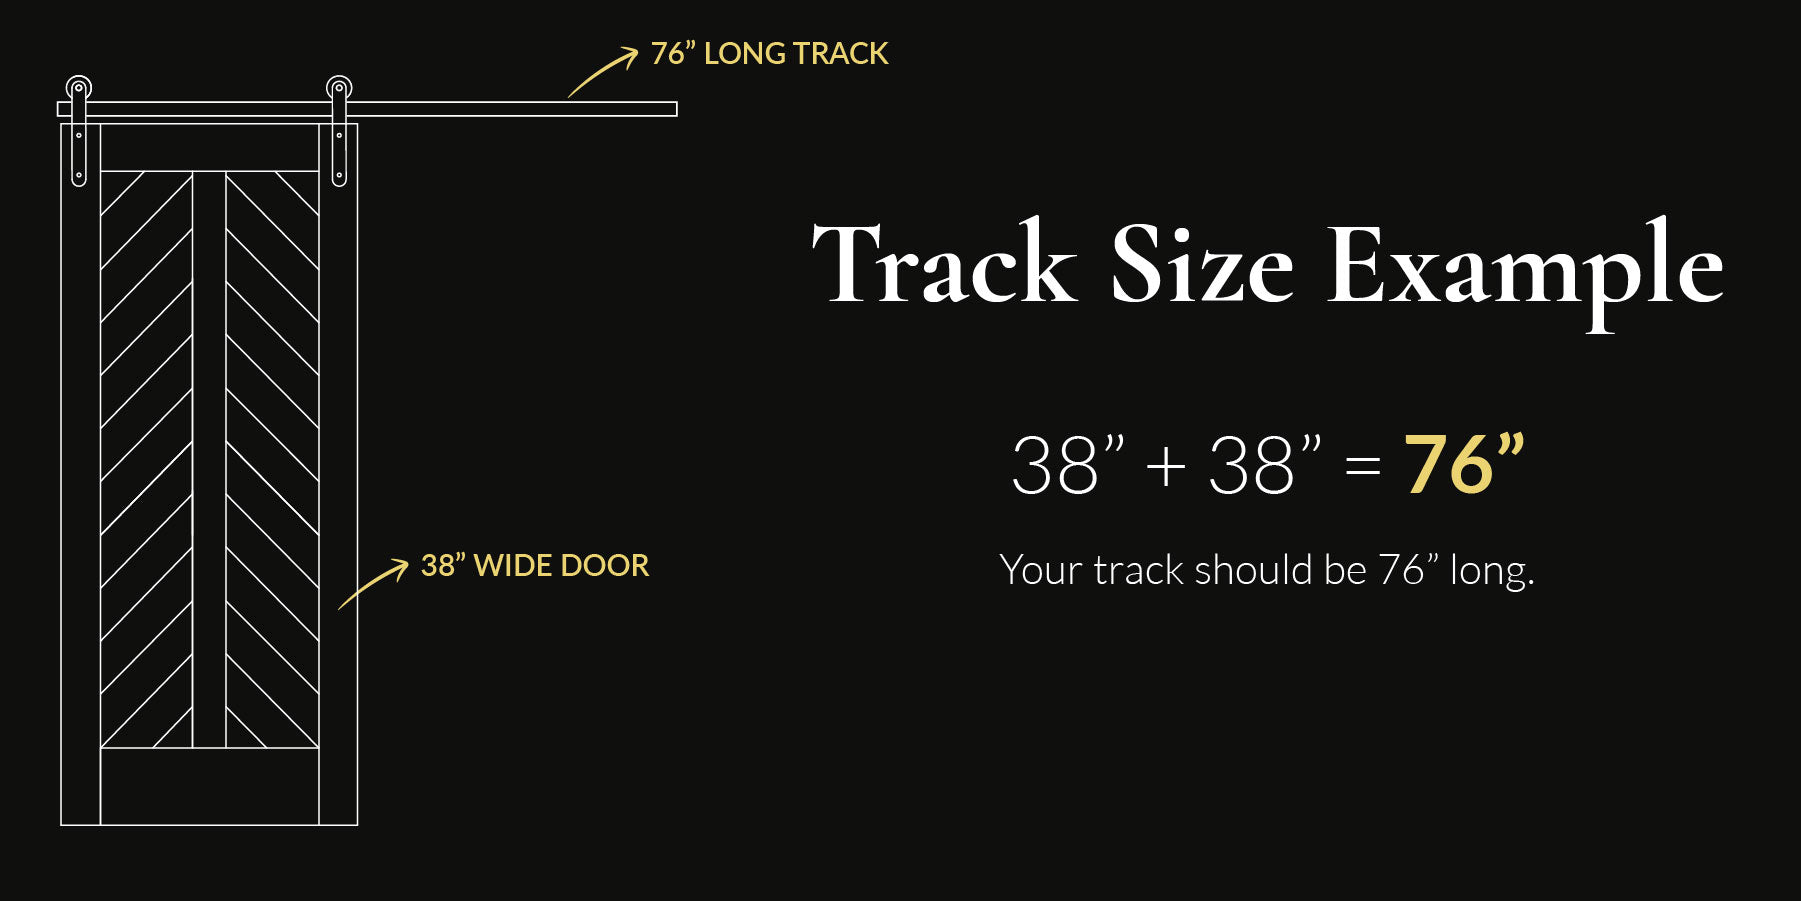 Barn door hardware track measurement example illustration. Line art illustrations o a Chevron Barn door and the Prop Barn door hardware kit with written instructions on the side. The text in the illustration is the same as the text box below.